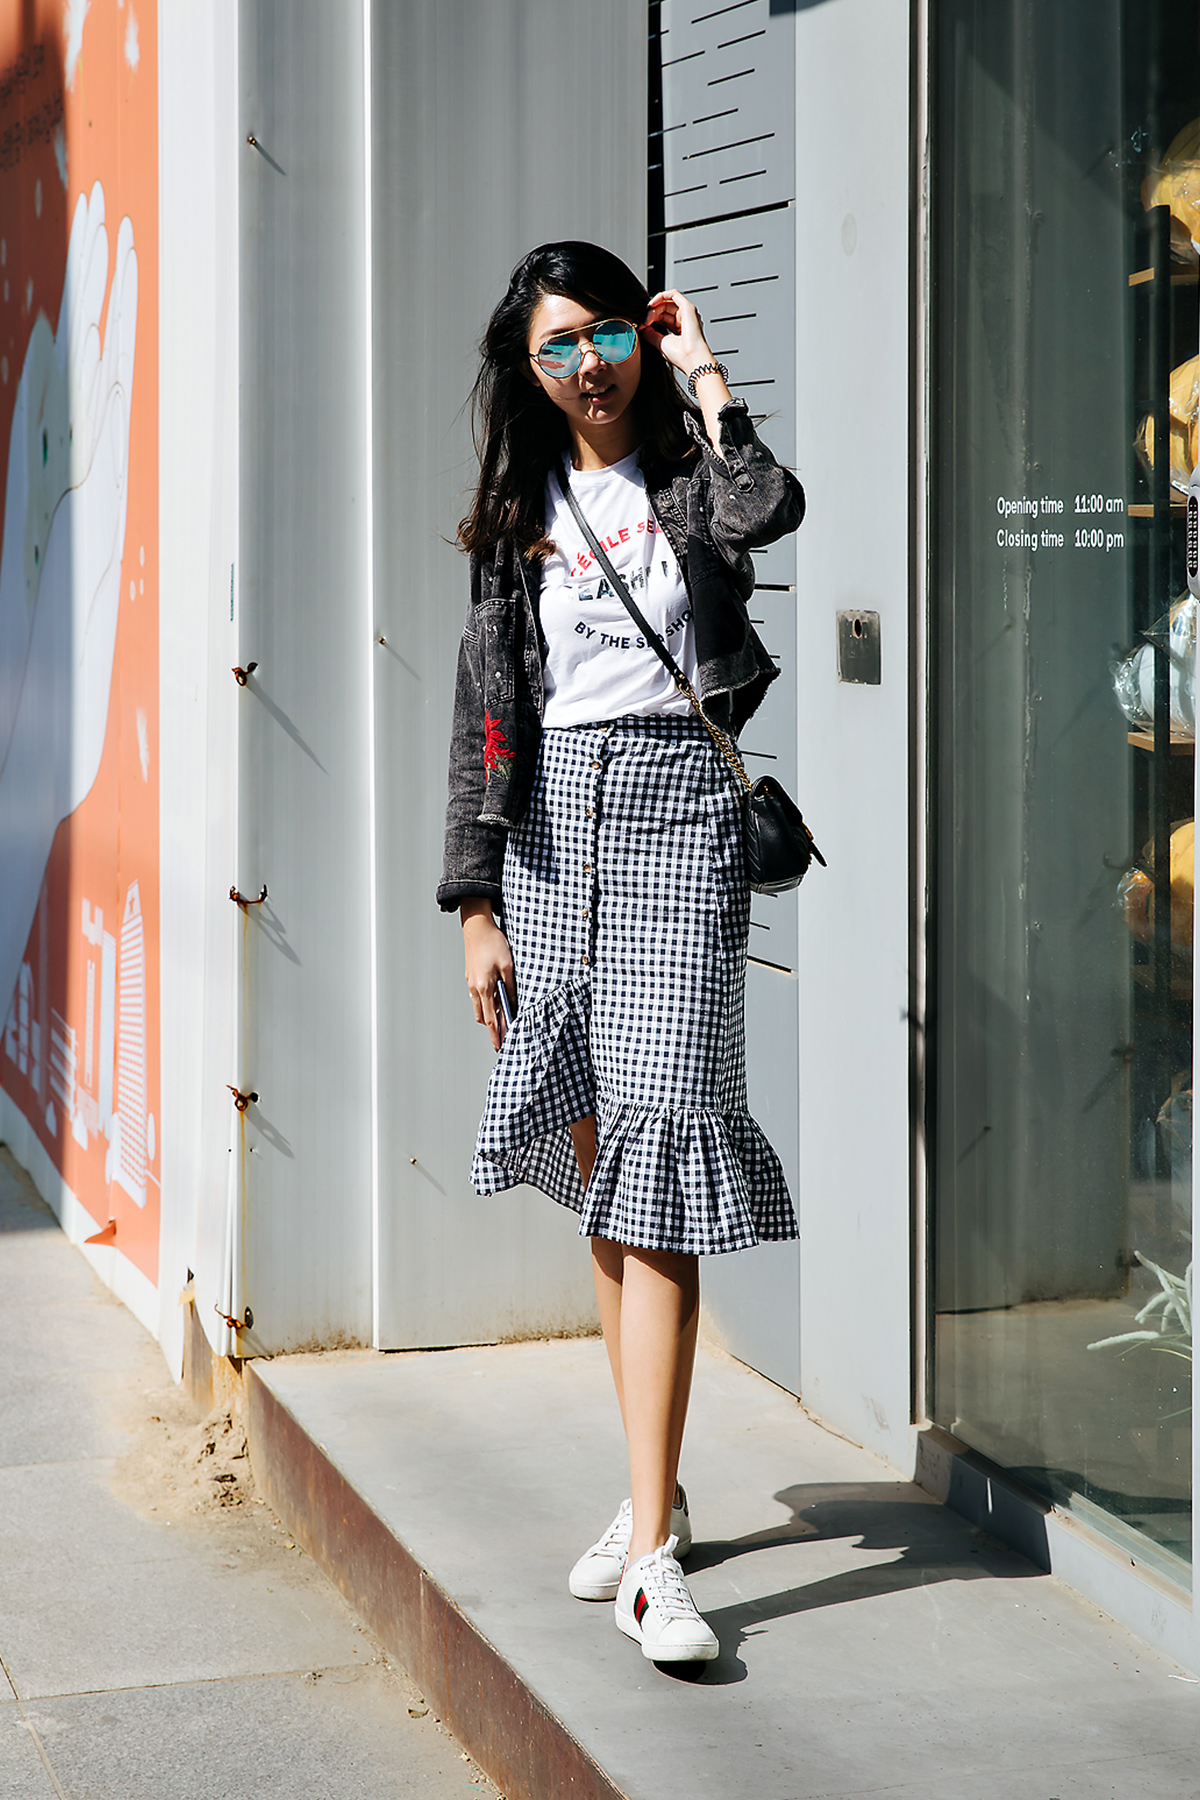 Yingying, Street style women spring 2018 in seoul